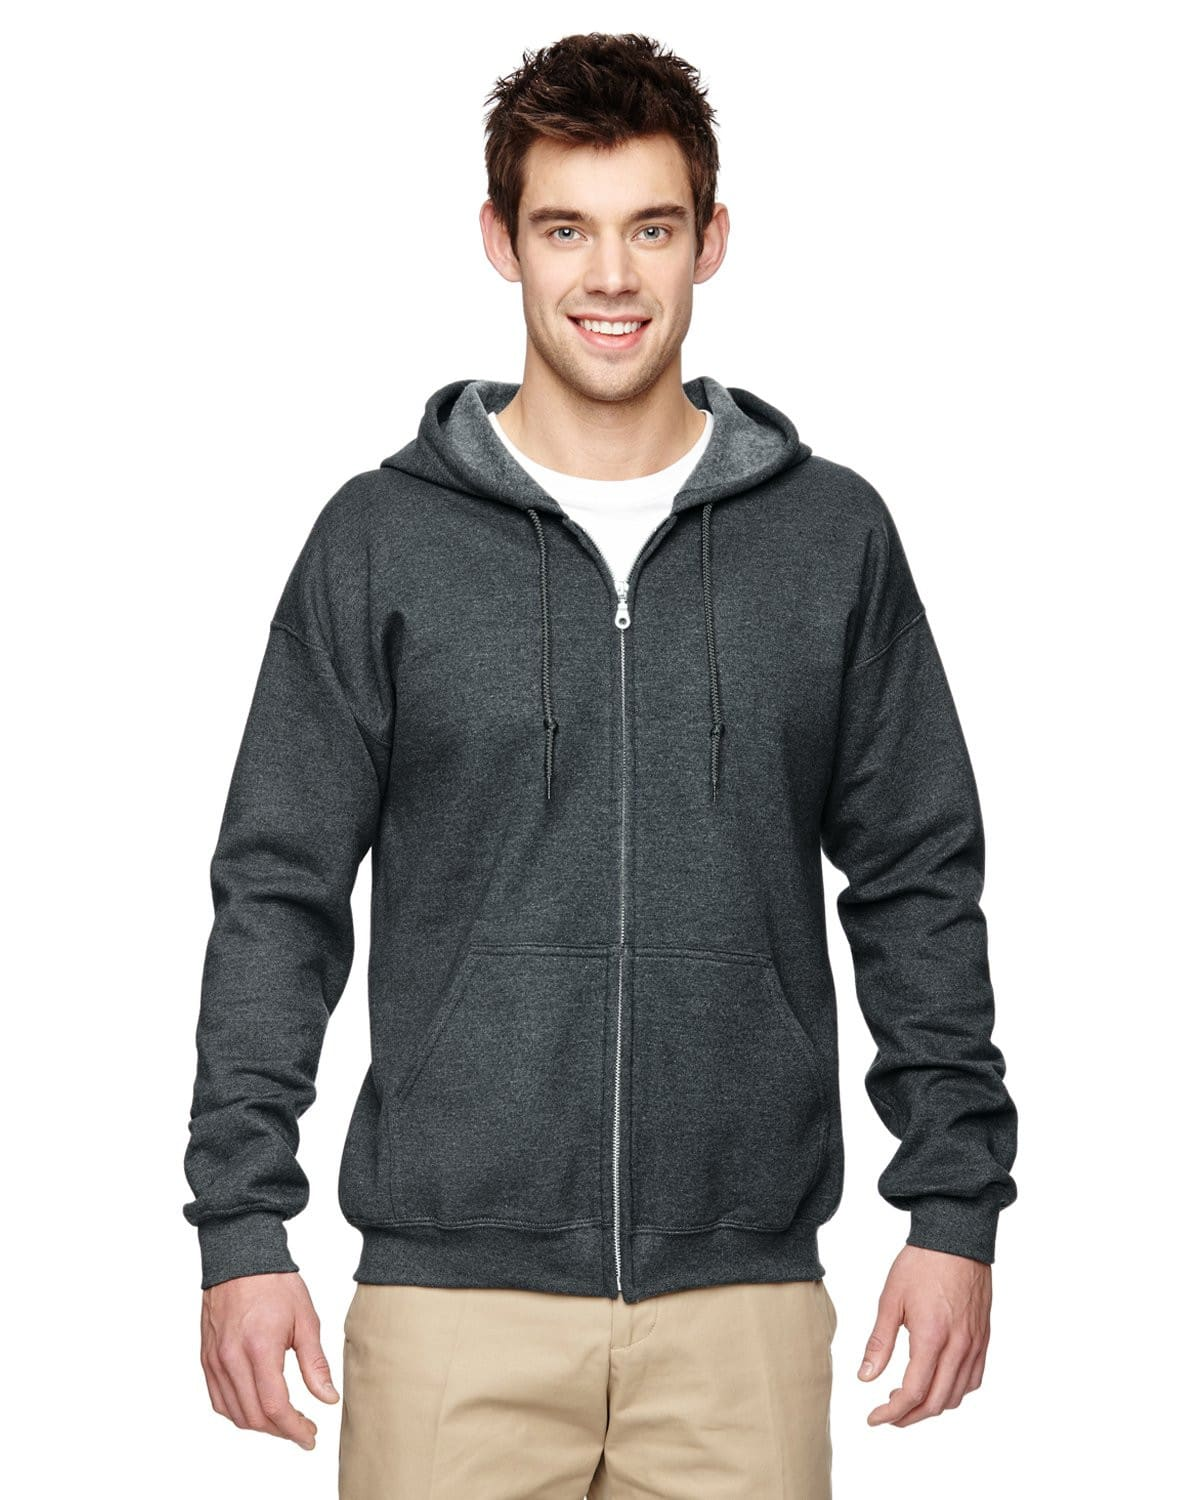 g186-adult-heavy-blend-adult-8-oz-50-50-full-zip-hood-2xl-5xl-2XL-ASH-Oasispromos